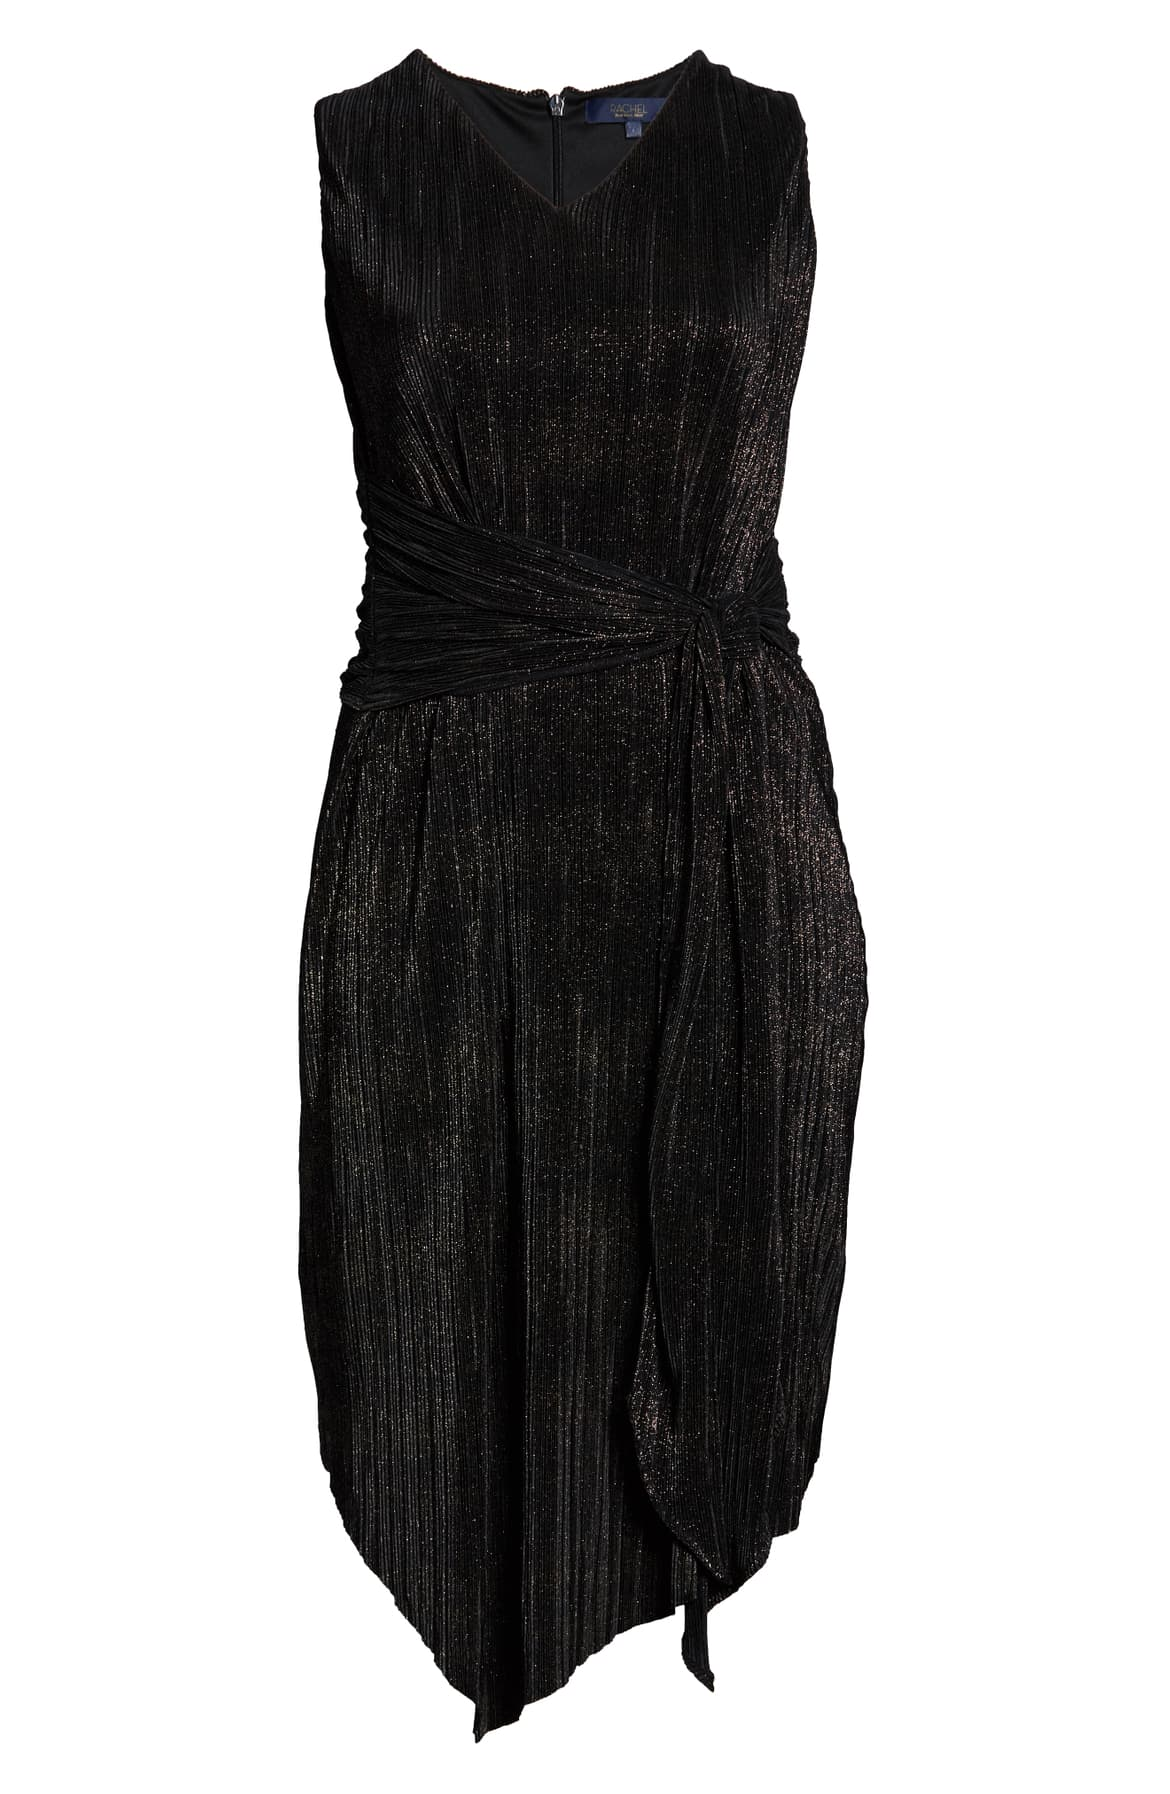 "<a  href=""https://shop.nordstrom.com/s/rachel-rachel-roy-alex-asymmetrical-cocktail-dress-plus-size/5400647/full?origin=keywordsearch-personalizedsort&breadcrumb=Home%2FAll%20Results&color=black%2F%20gold"" target=""_blank"" title=""https://shop.nordstrom.com/s/rachel-rachel-roy-alex-asymmetrical-cocktail-dress-plus-size/5400647/full?origin=keywordsearch-personalizedsort&breadcrumb=Home%2FAll%20Results&color=black%2F%20gold"">Rachel Rachel Roy Alex Asymmetrical Cocktail Dress - $129</a>. From cozy to gold hued to tailored, Nordstrom has the hottest trends for getting glam this holiday season! (Credit: Nordstrom)"